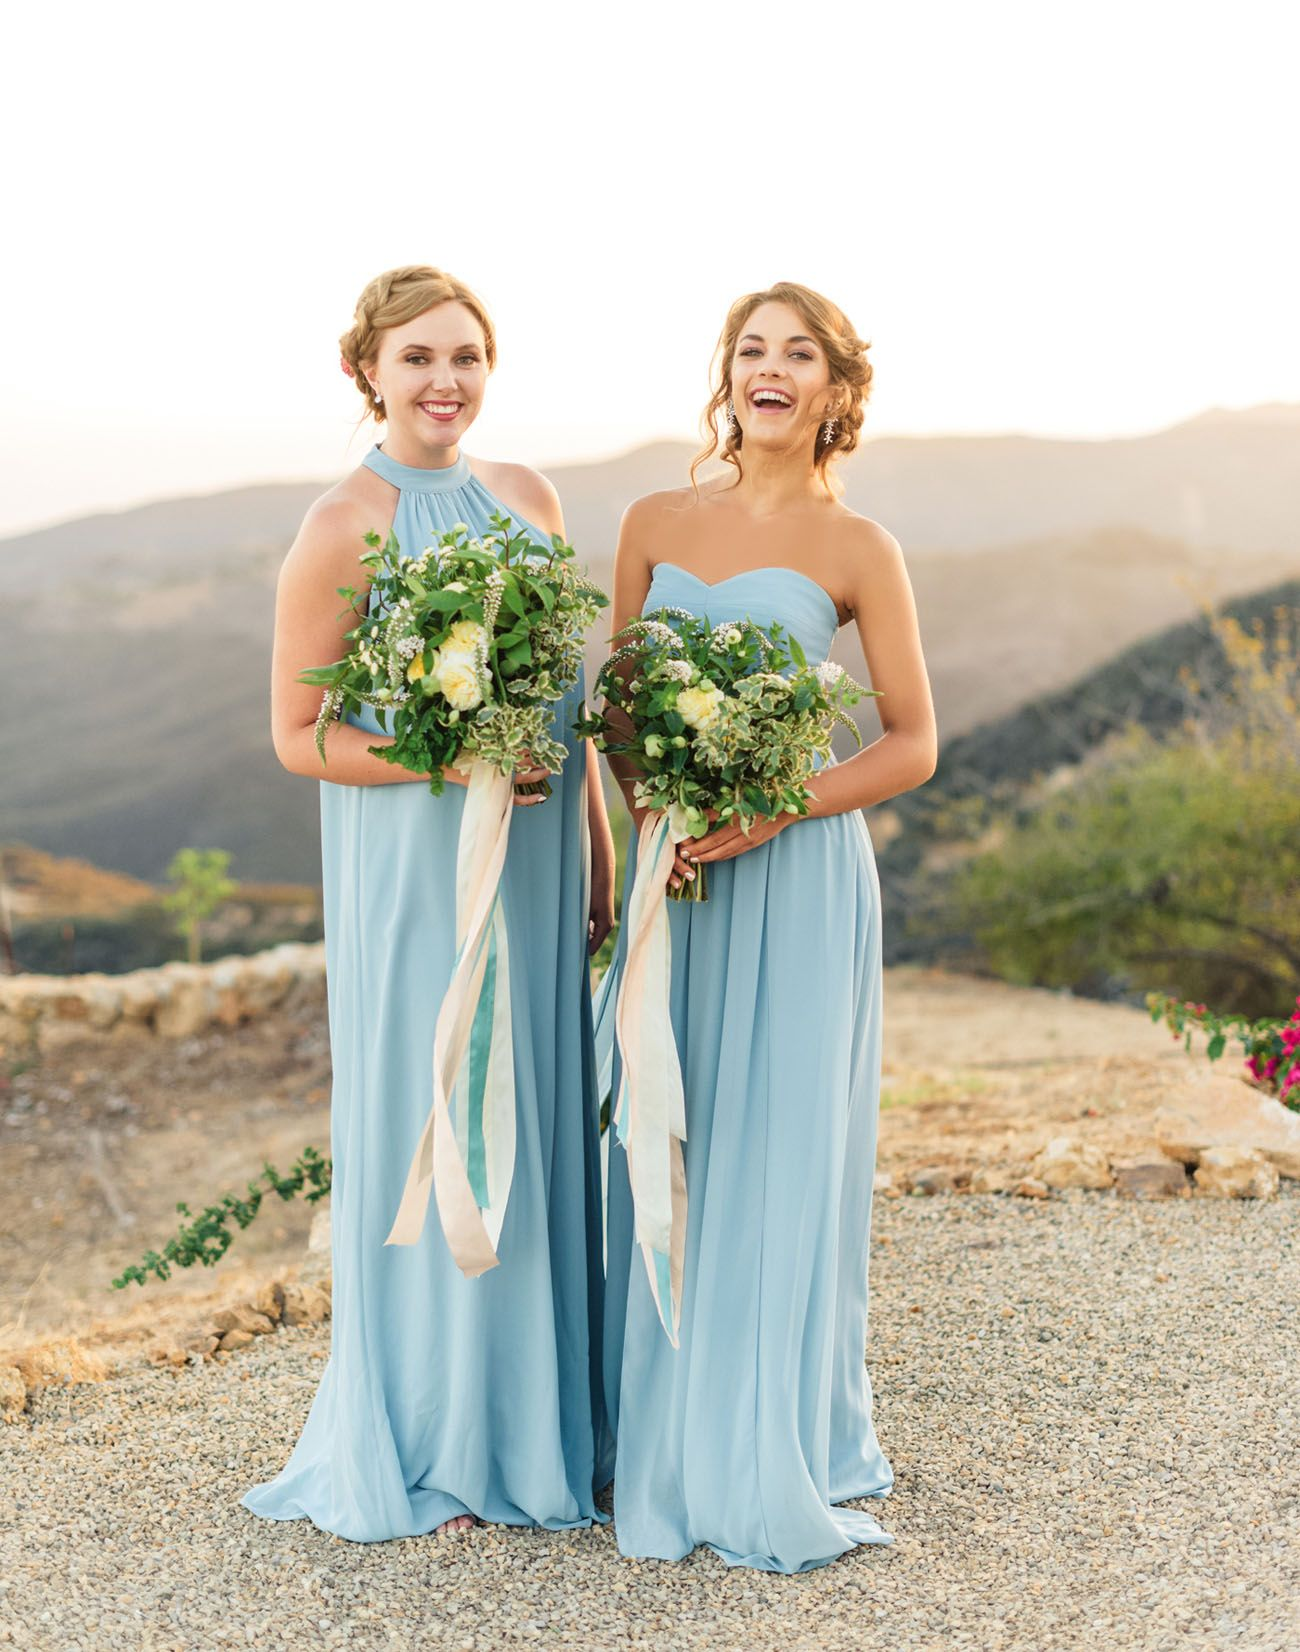 Comfortable hipster bridesmaid dresses ideas wedding ideas glam labor day weekend wedding inspiration bridal parties ombrellifo Images